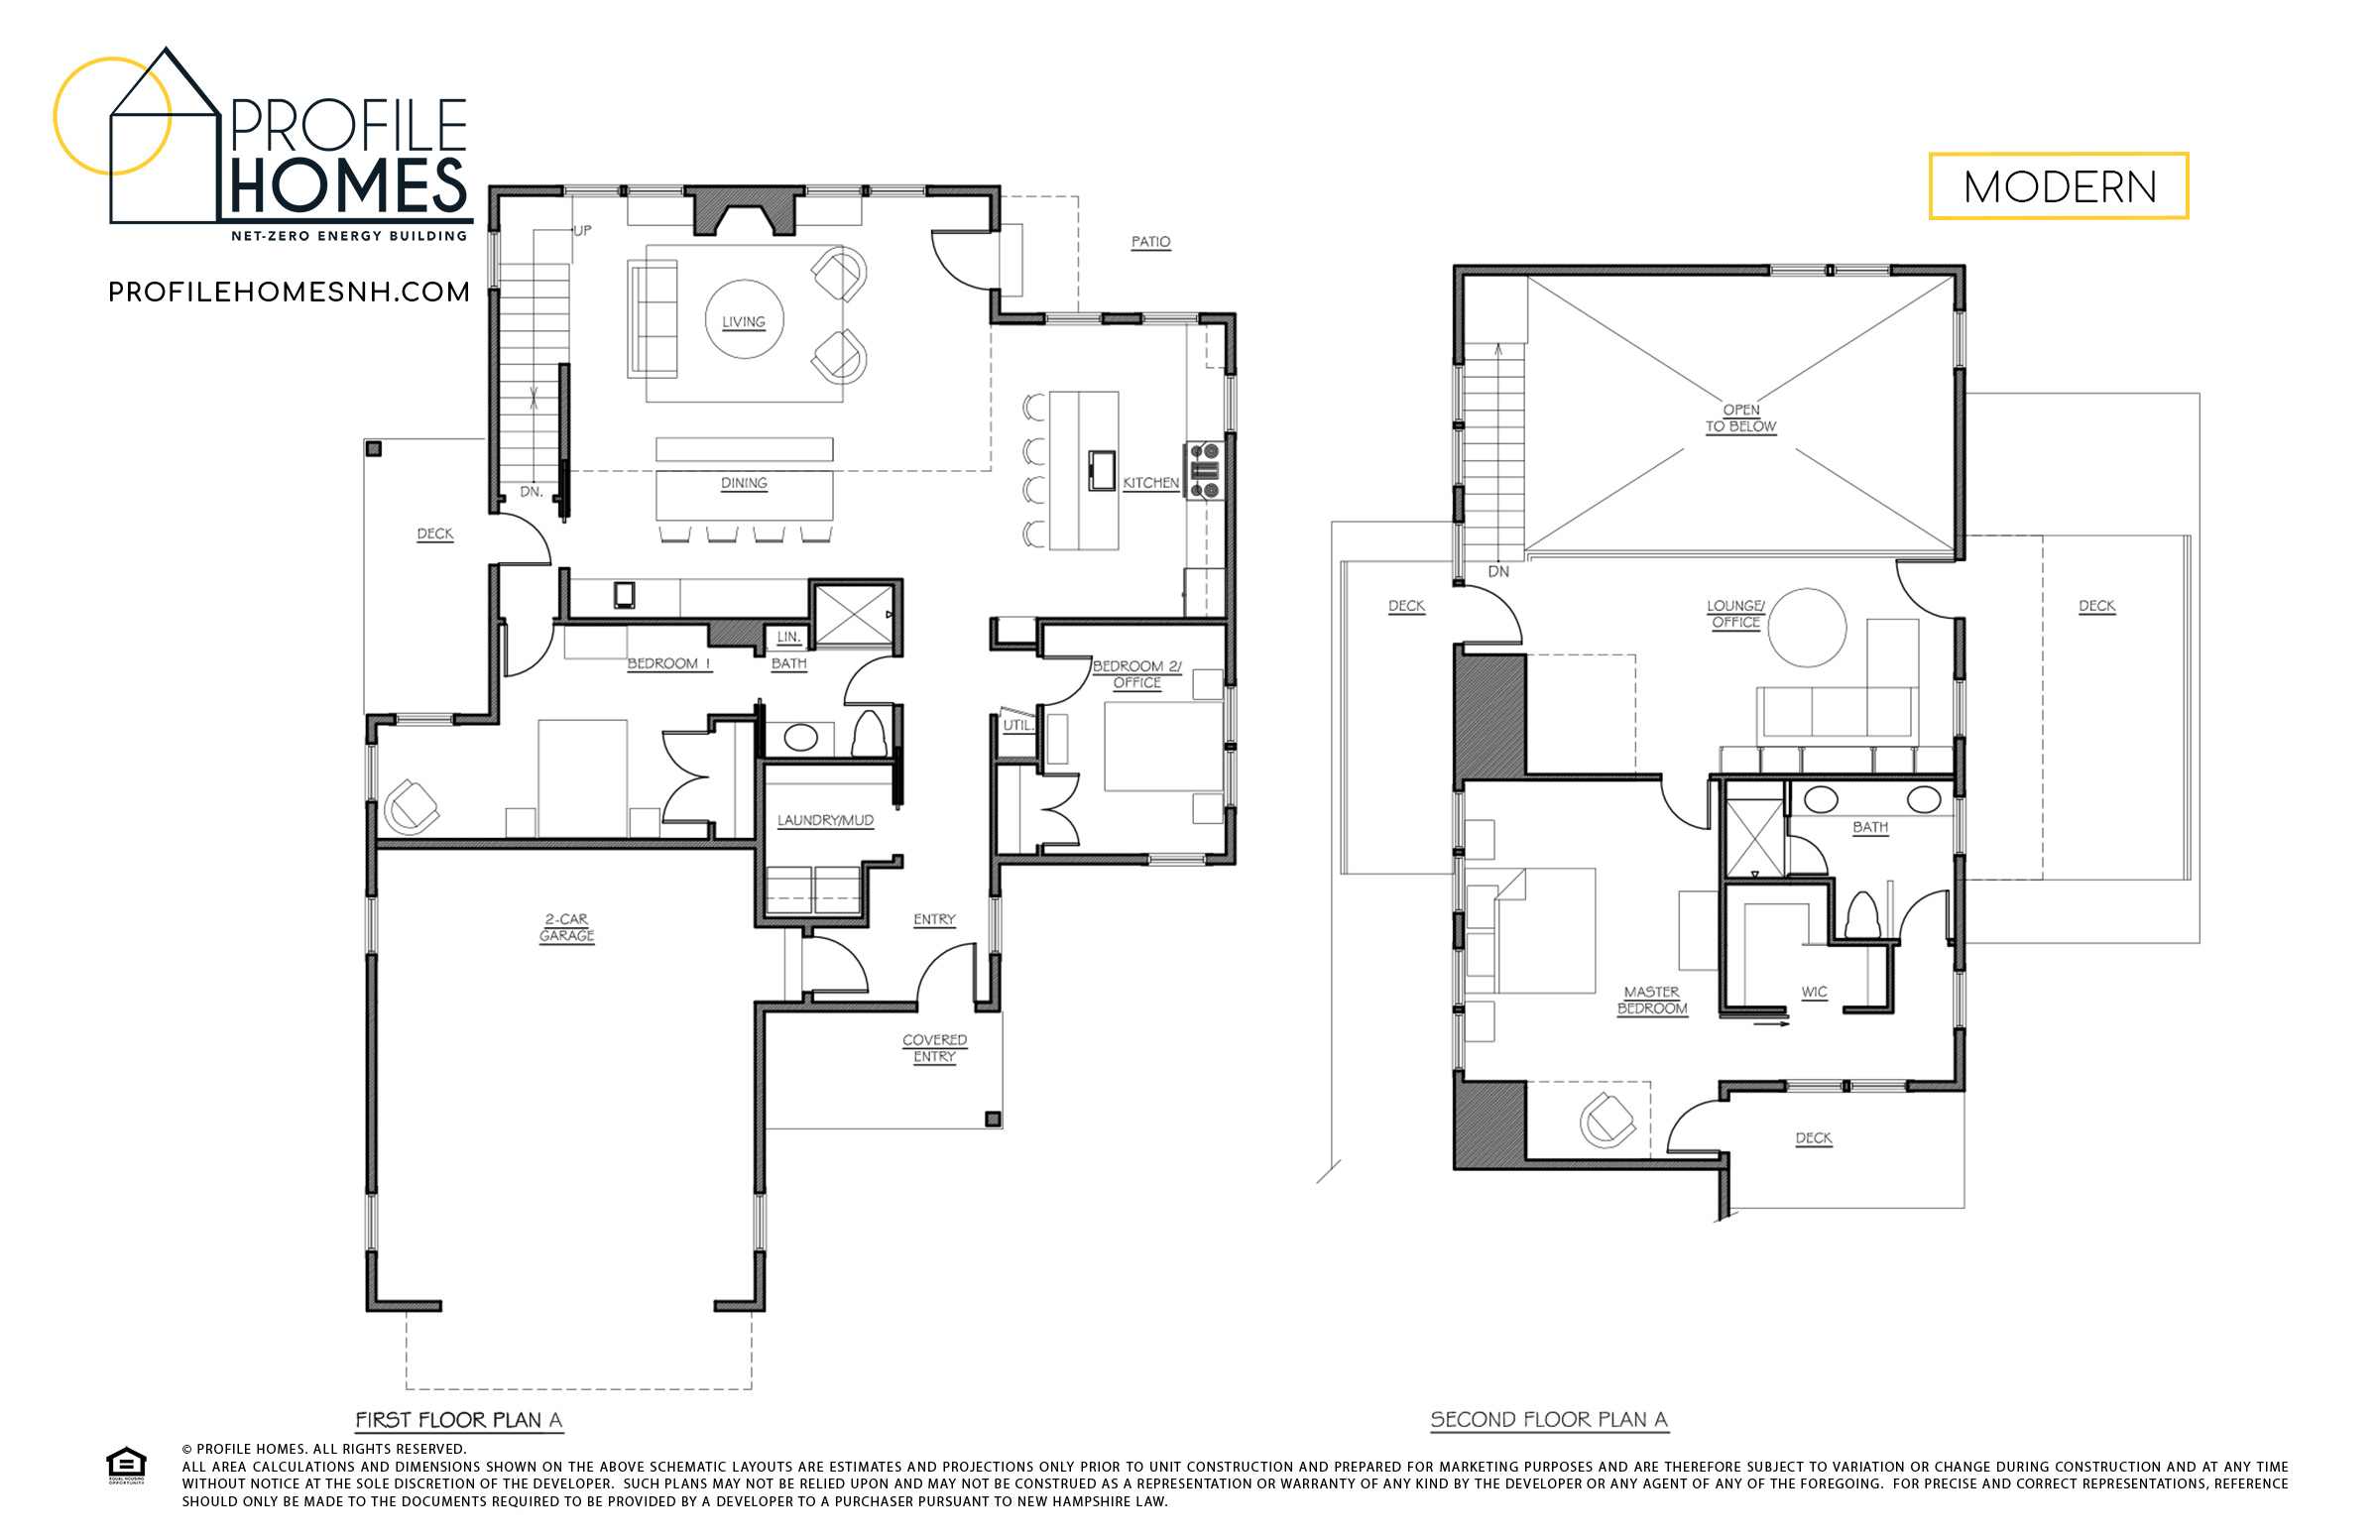 Profile Homes Floorplan Modern © 2018 Profile Homes